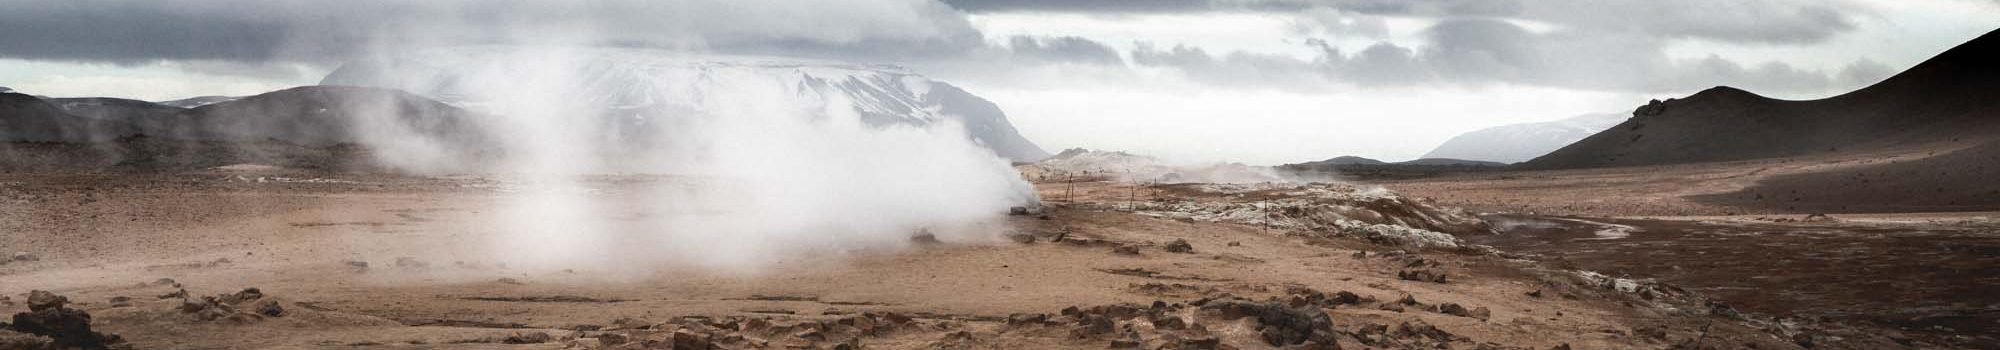 Smoke at namaskard geothermal area